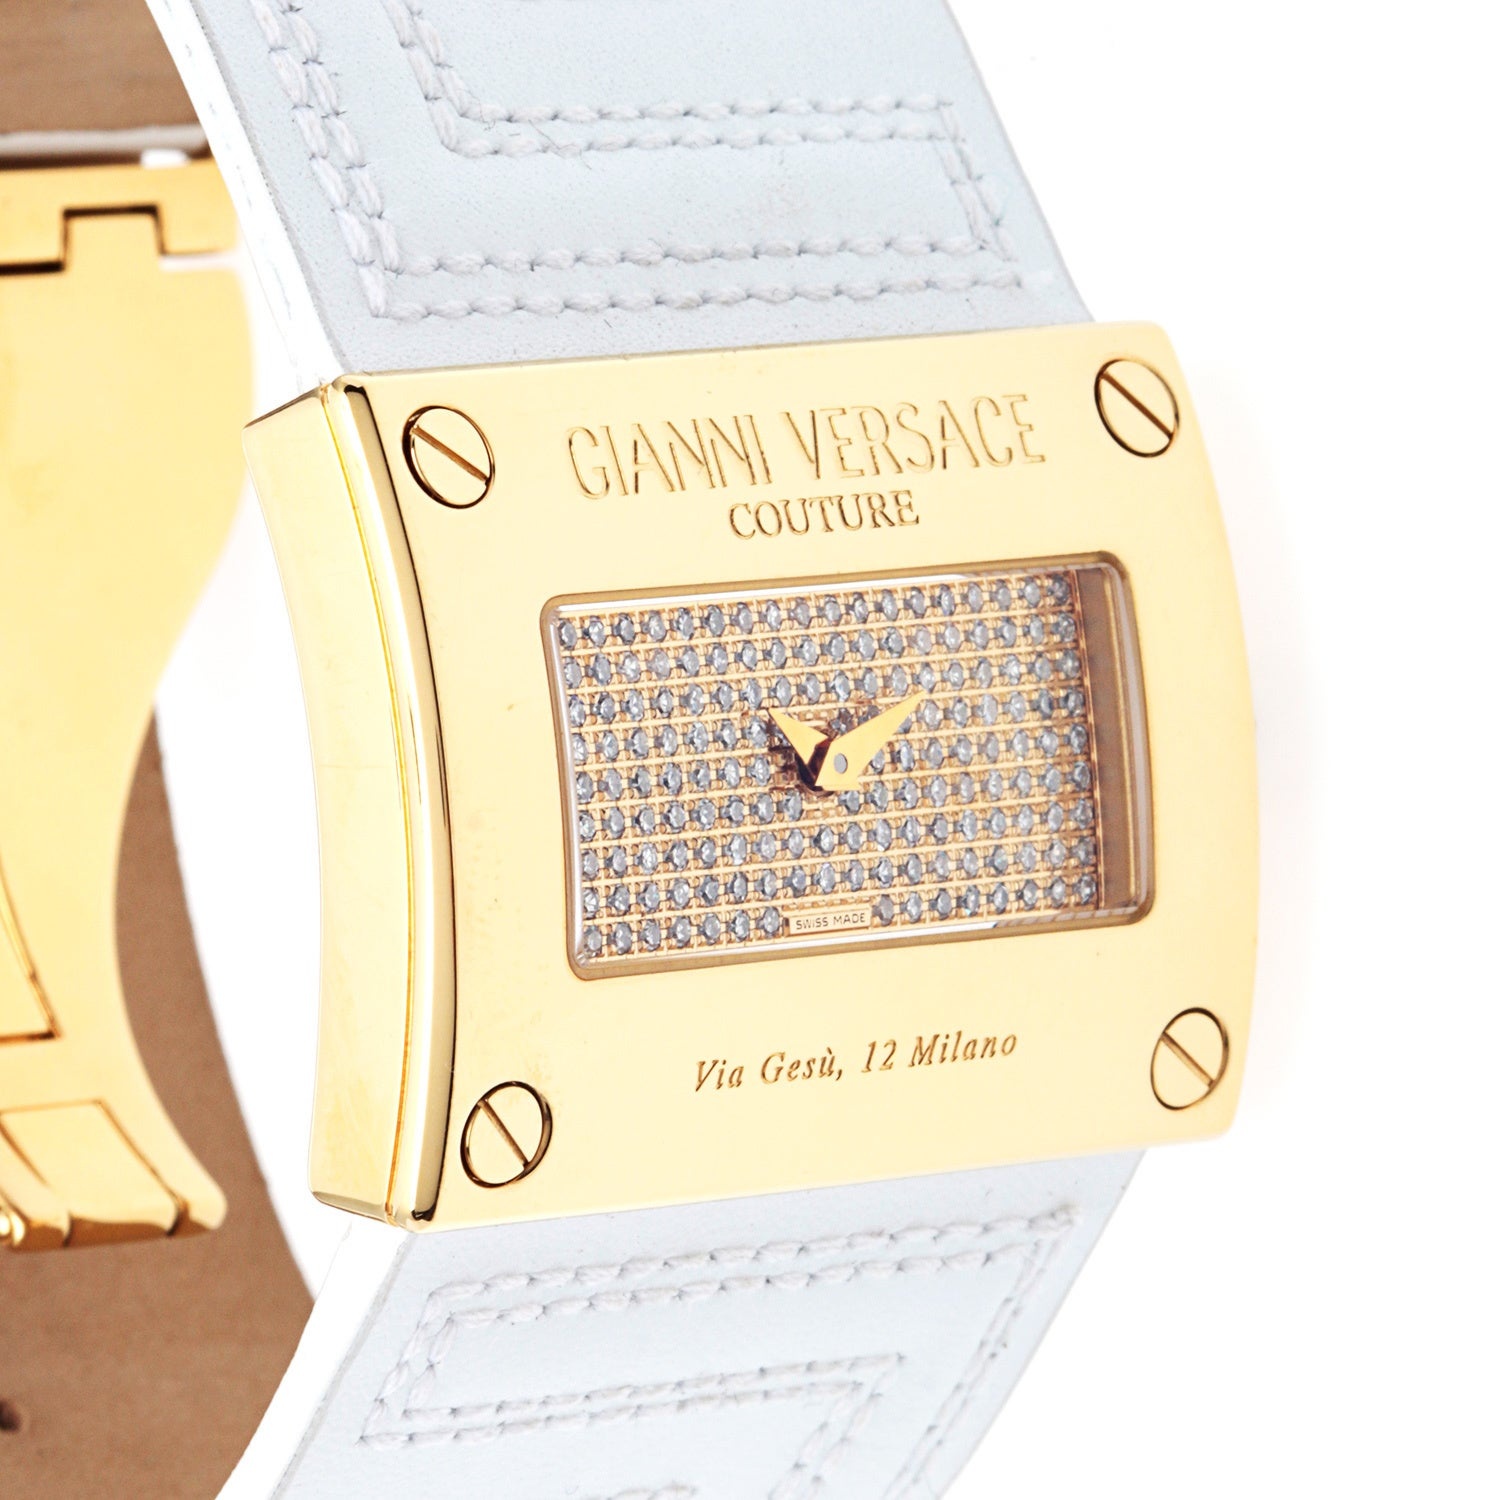 Versace Women's 71QSD91FS1 White Leather Watch